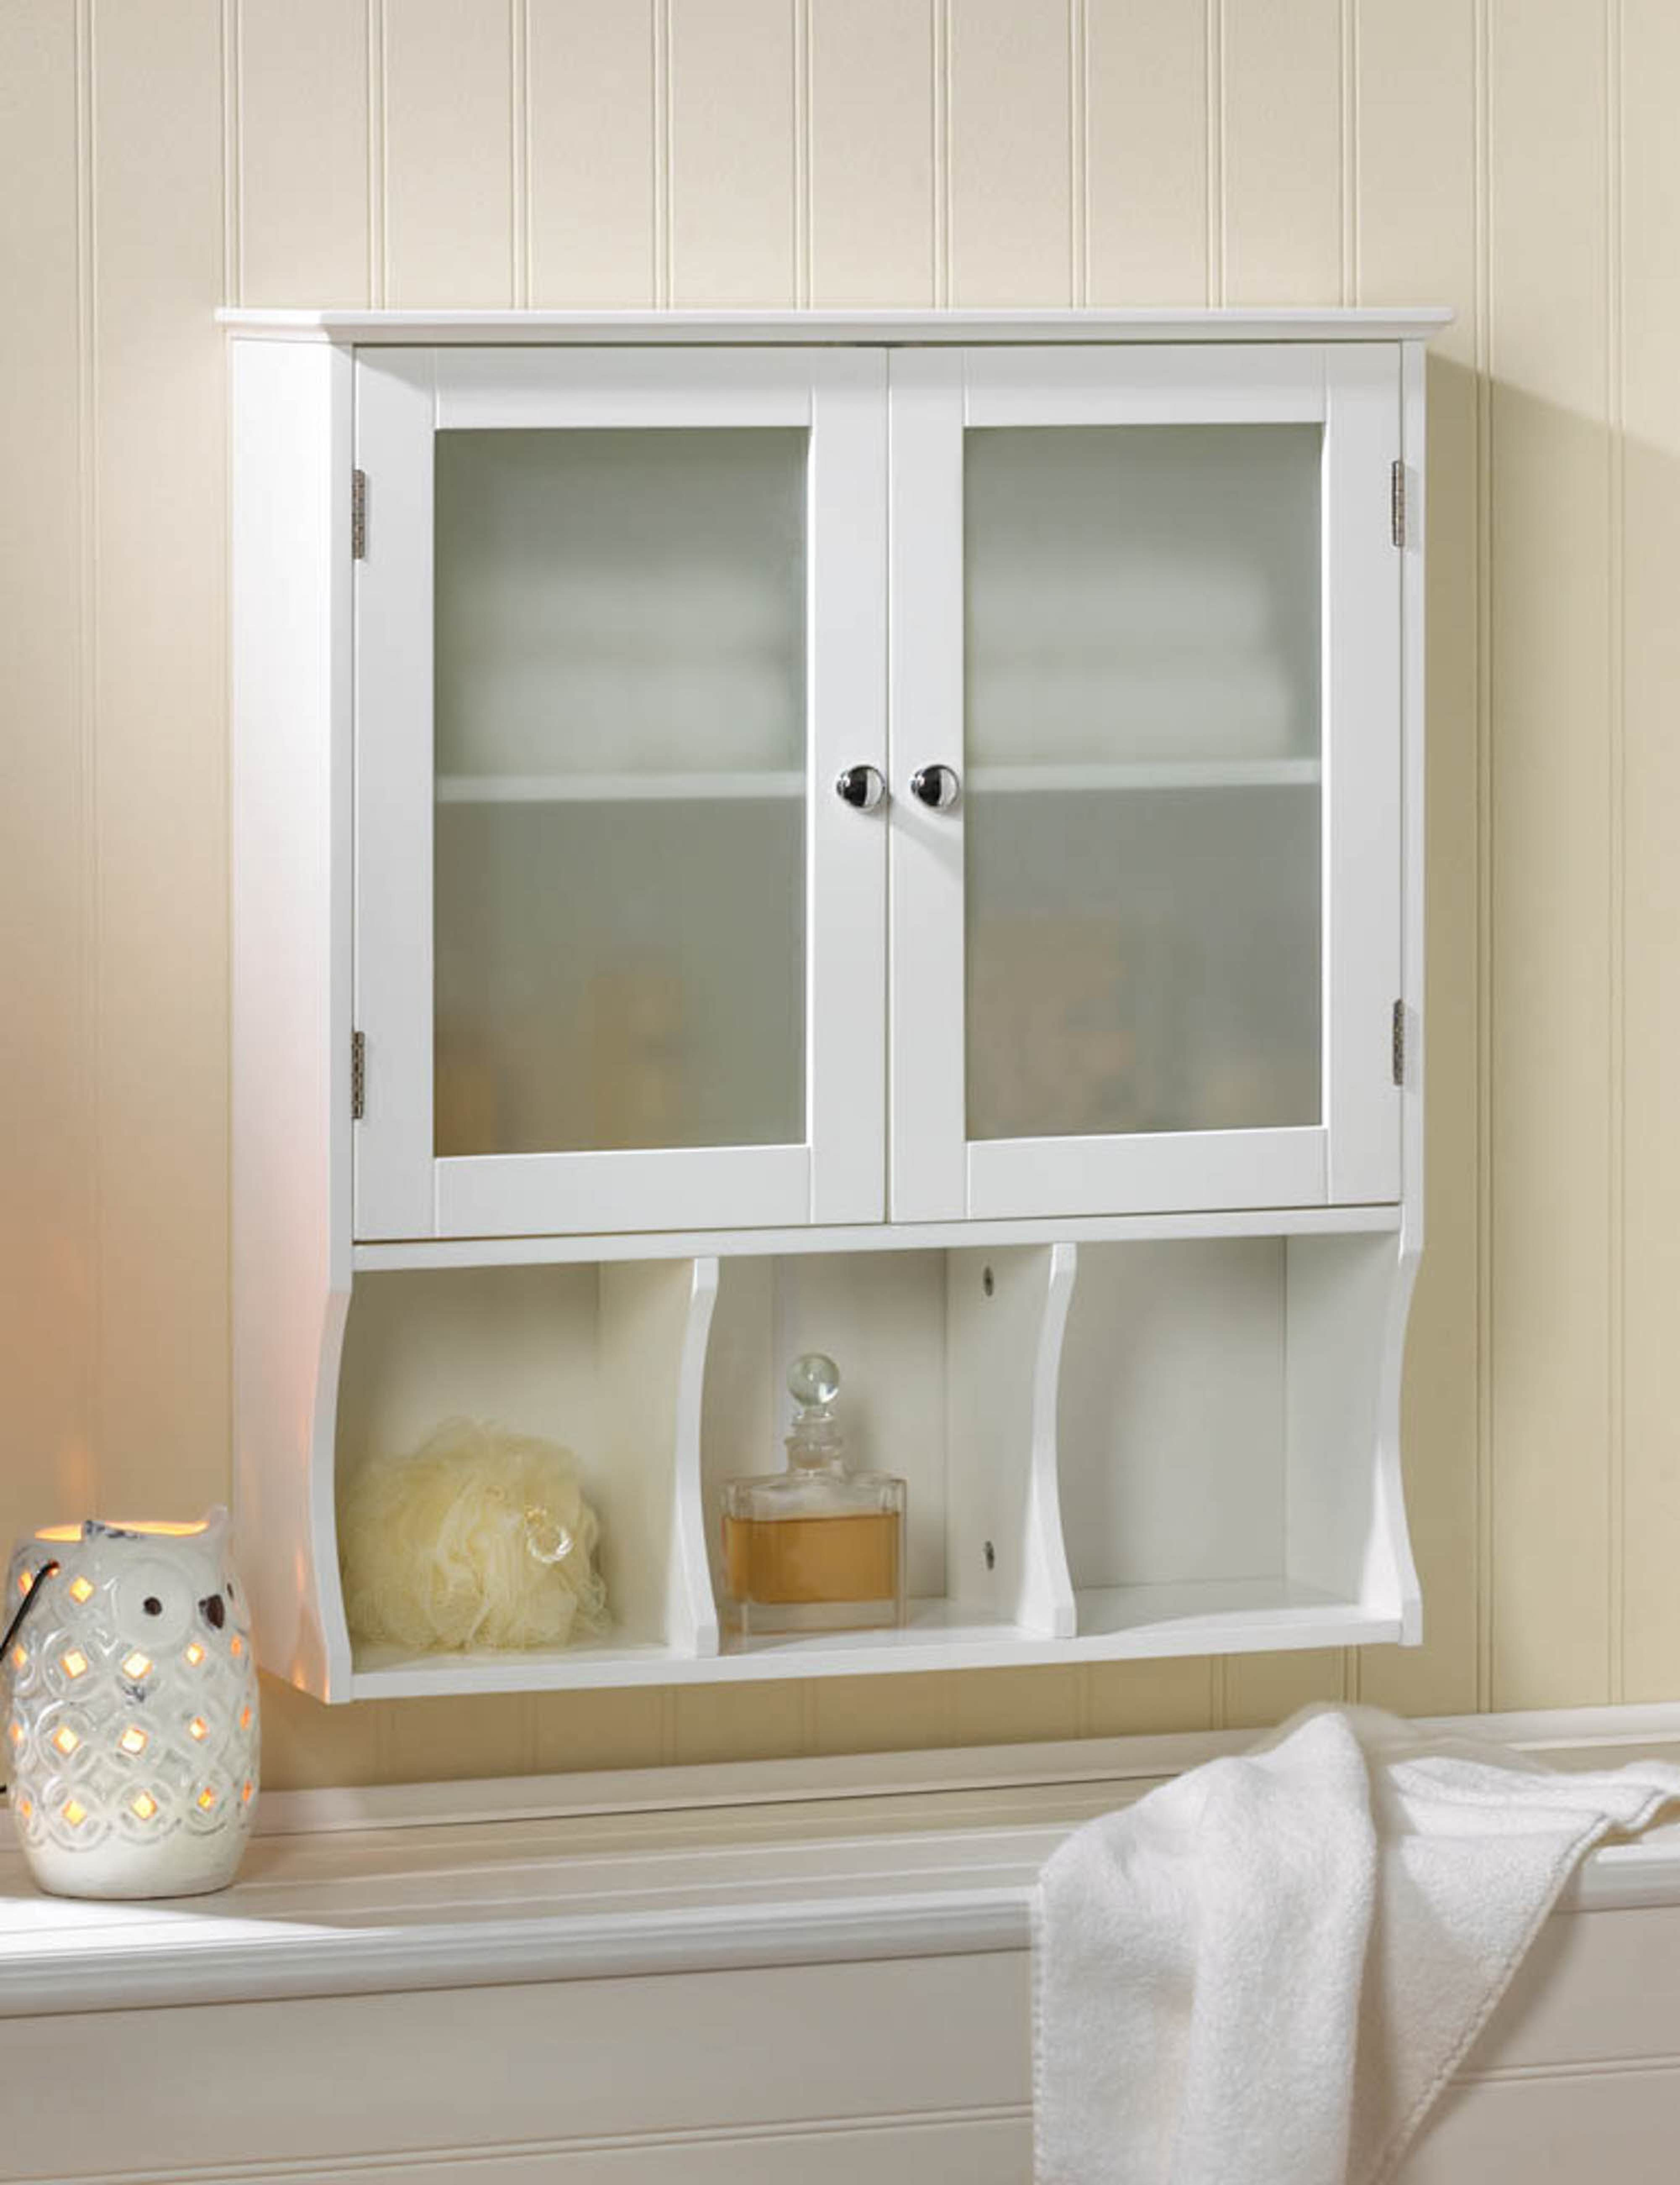 Aspen Wall Cabinet Wall Cabinet Wall Storage Cabinets Glass Cabinet Doors Decorative bathroom wall cabinets